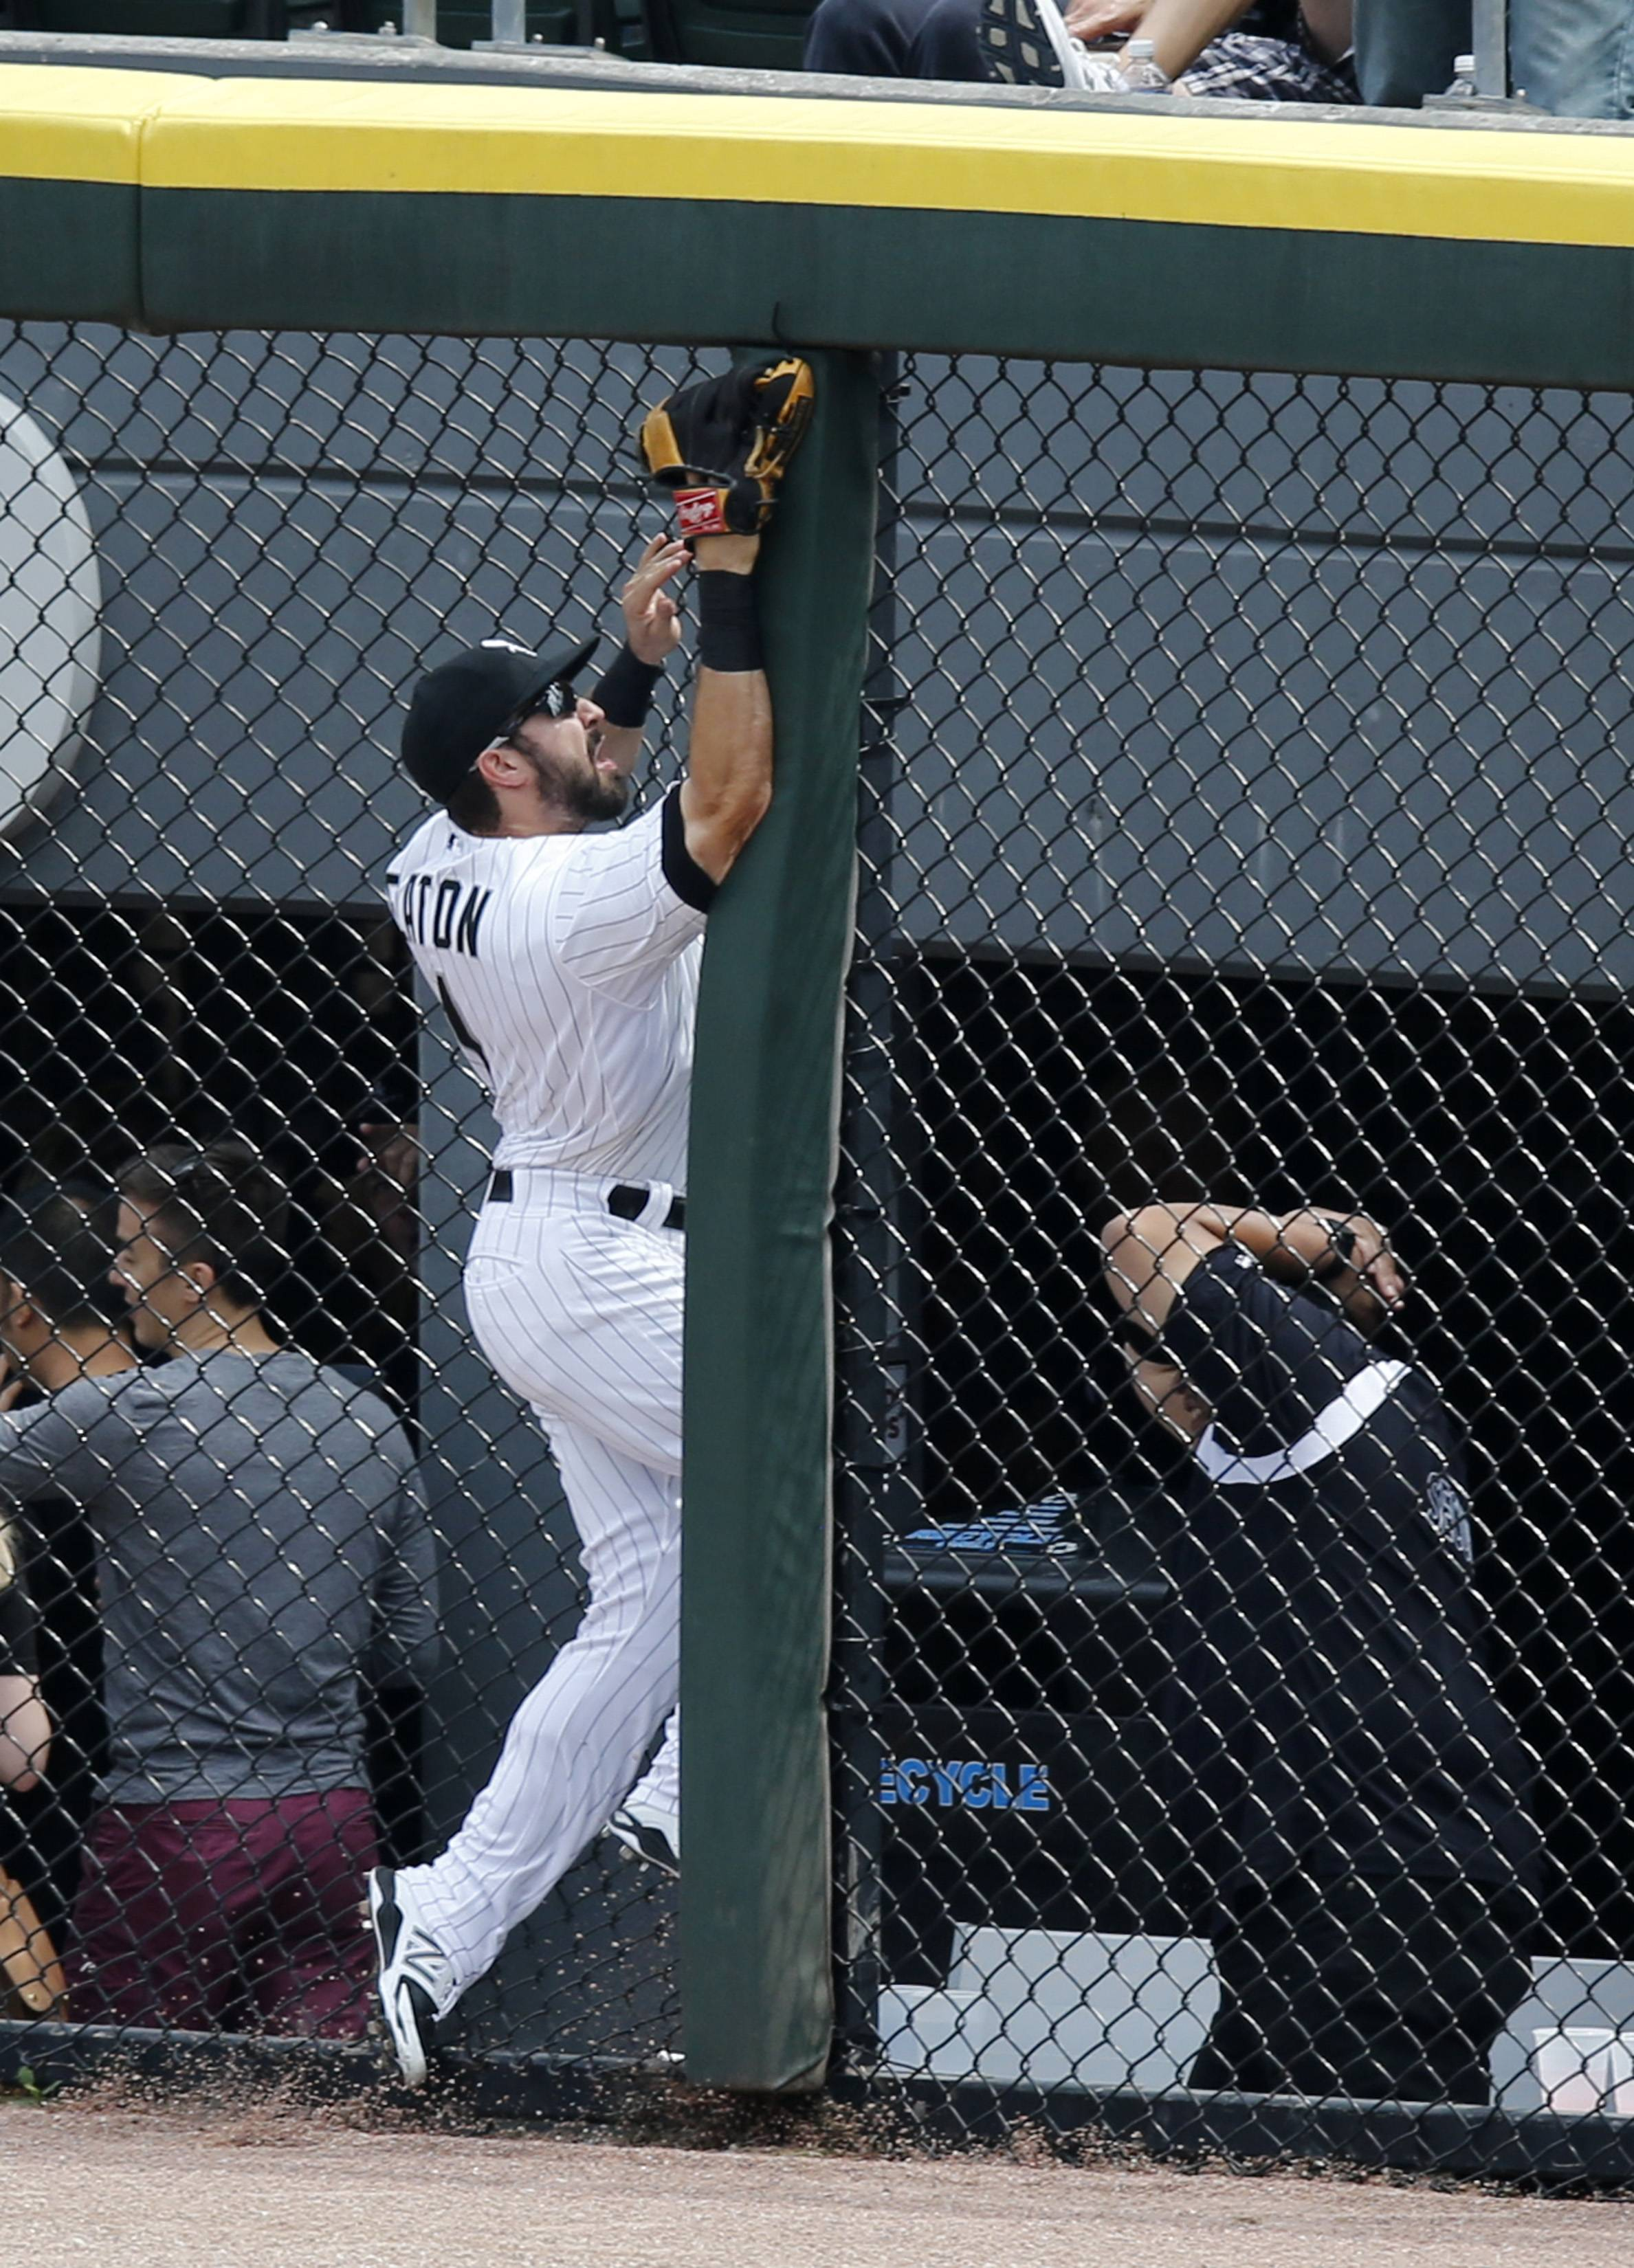 White Sox center fielder Adam Eaton slams into the fence in right-center chasing a 2-run homer by the Rangers' Adam Rosales during the second inning Wednesday at U.S. Cellular Field.